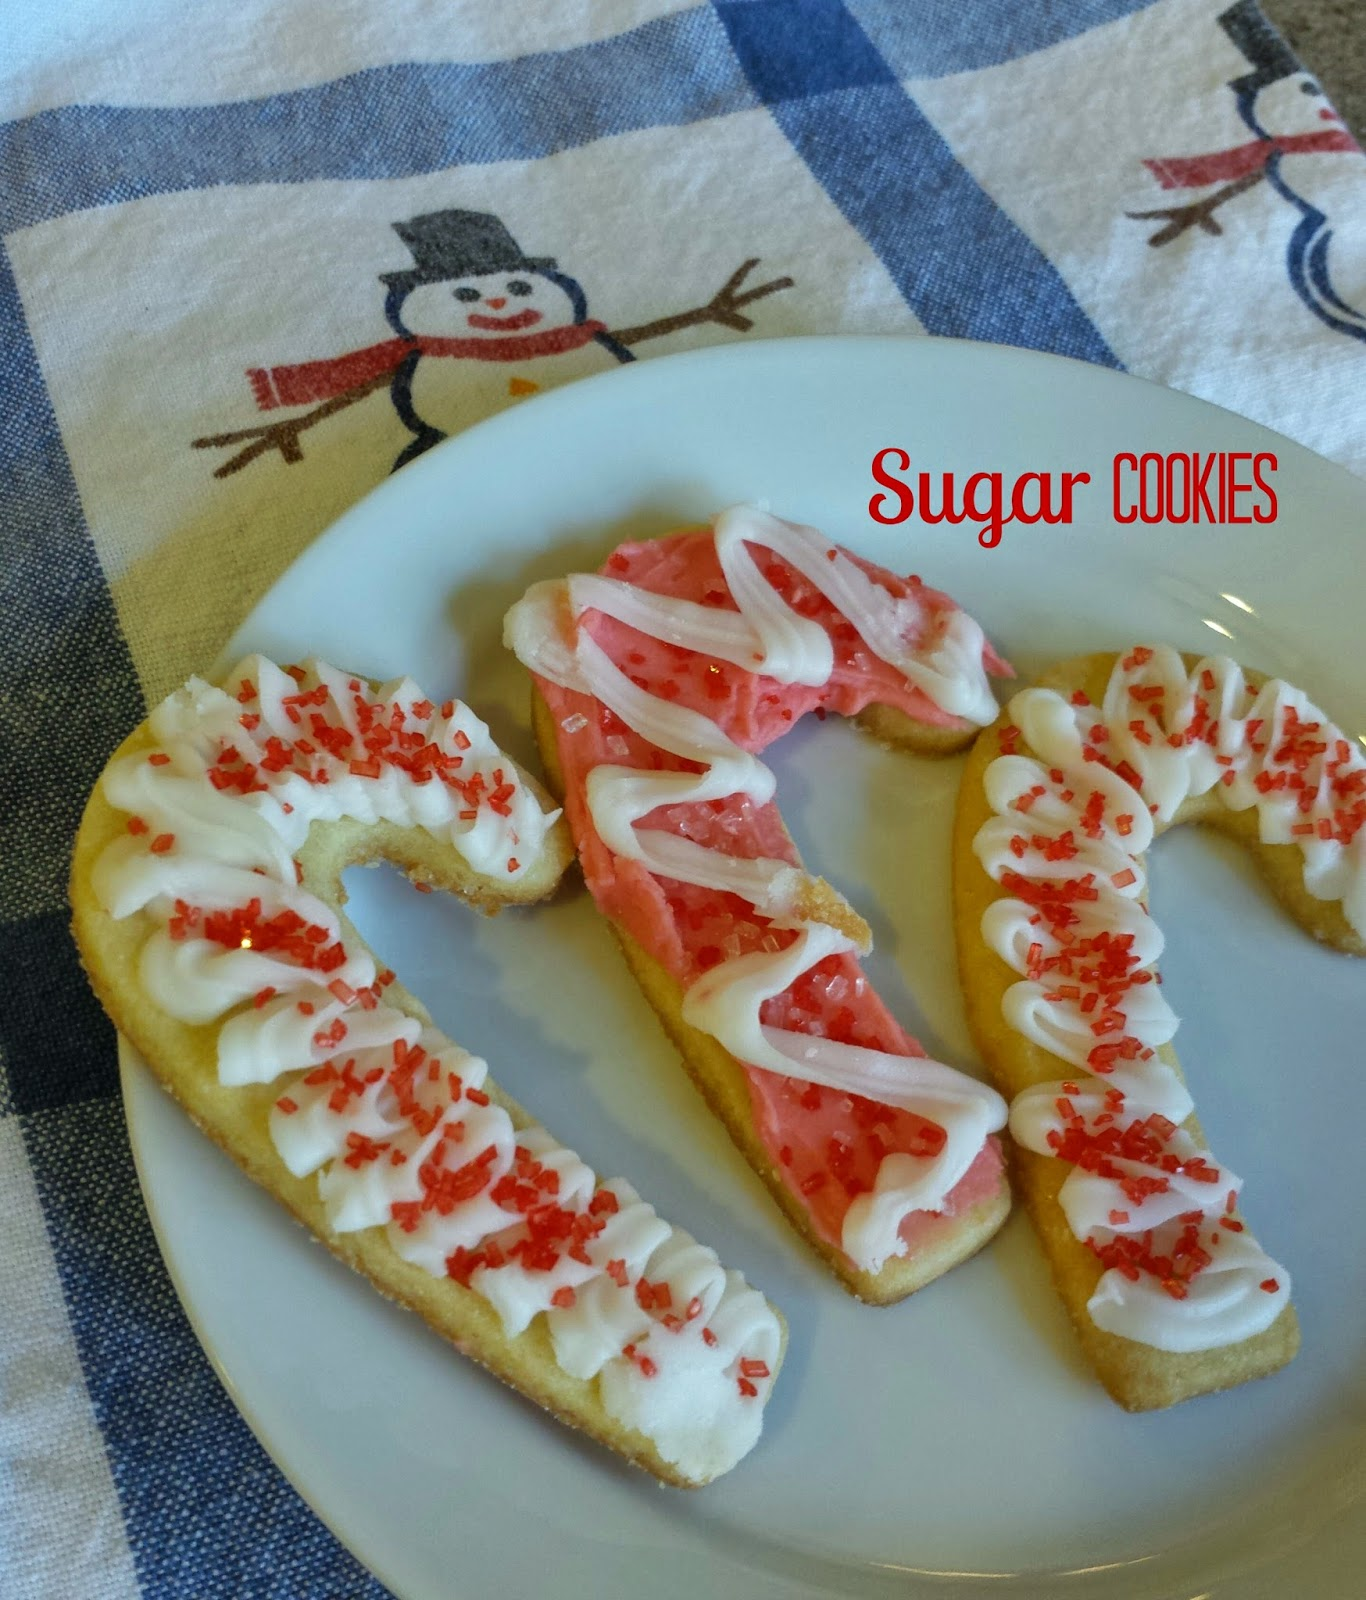 Kid-friendly and easy Sugar Cookie recipe for the holidays or anytime of year.